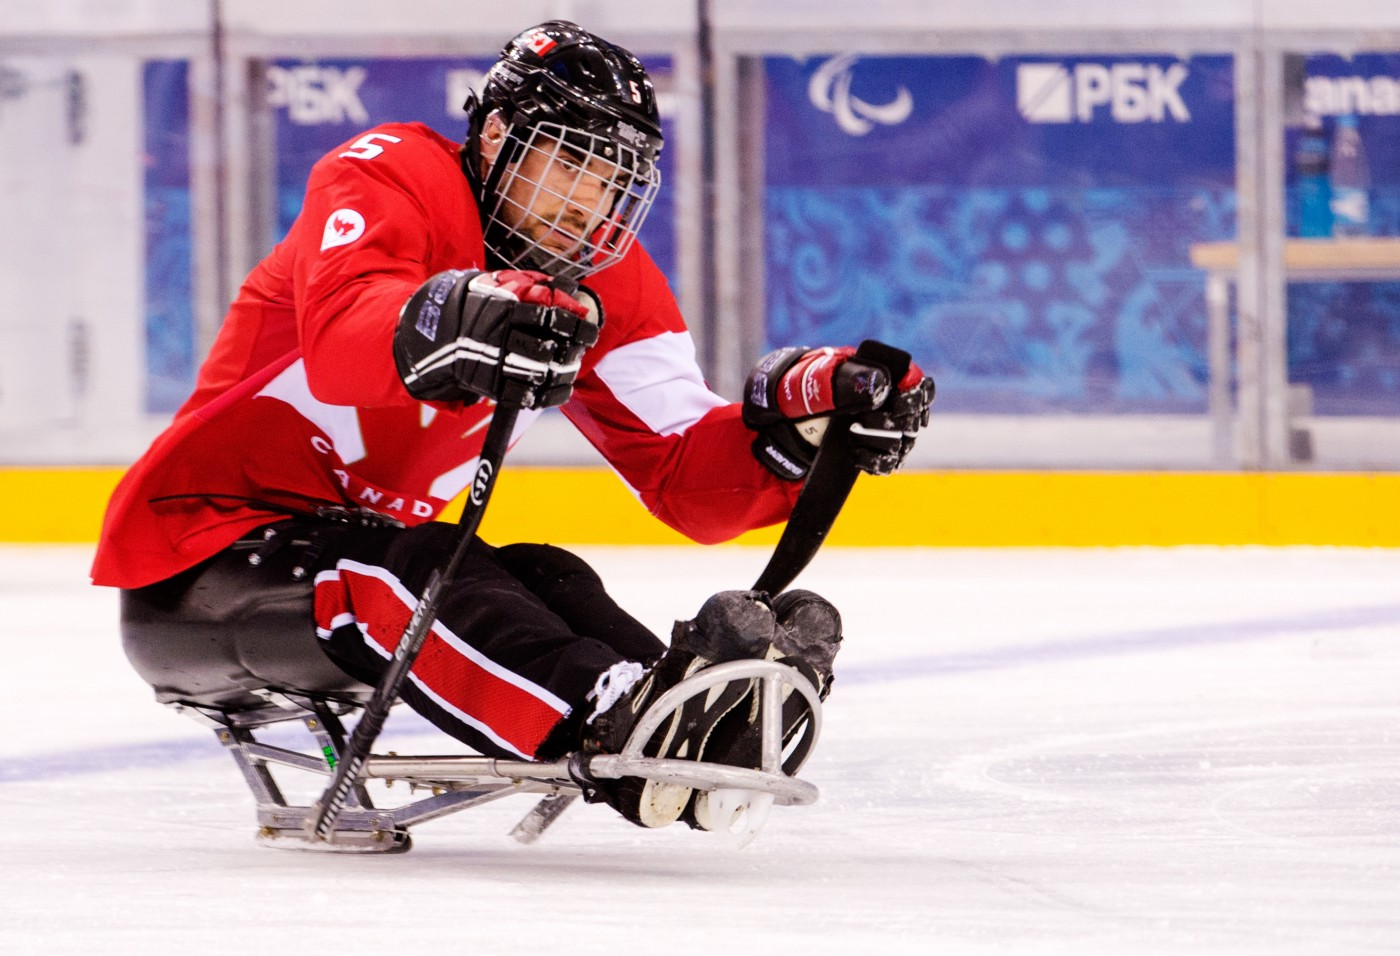 *Playing in the 2014 Paralympics in Sochi, Russia